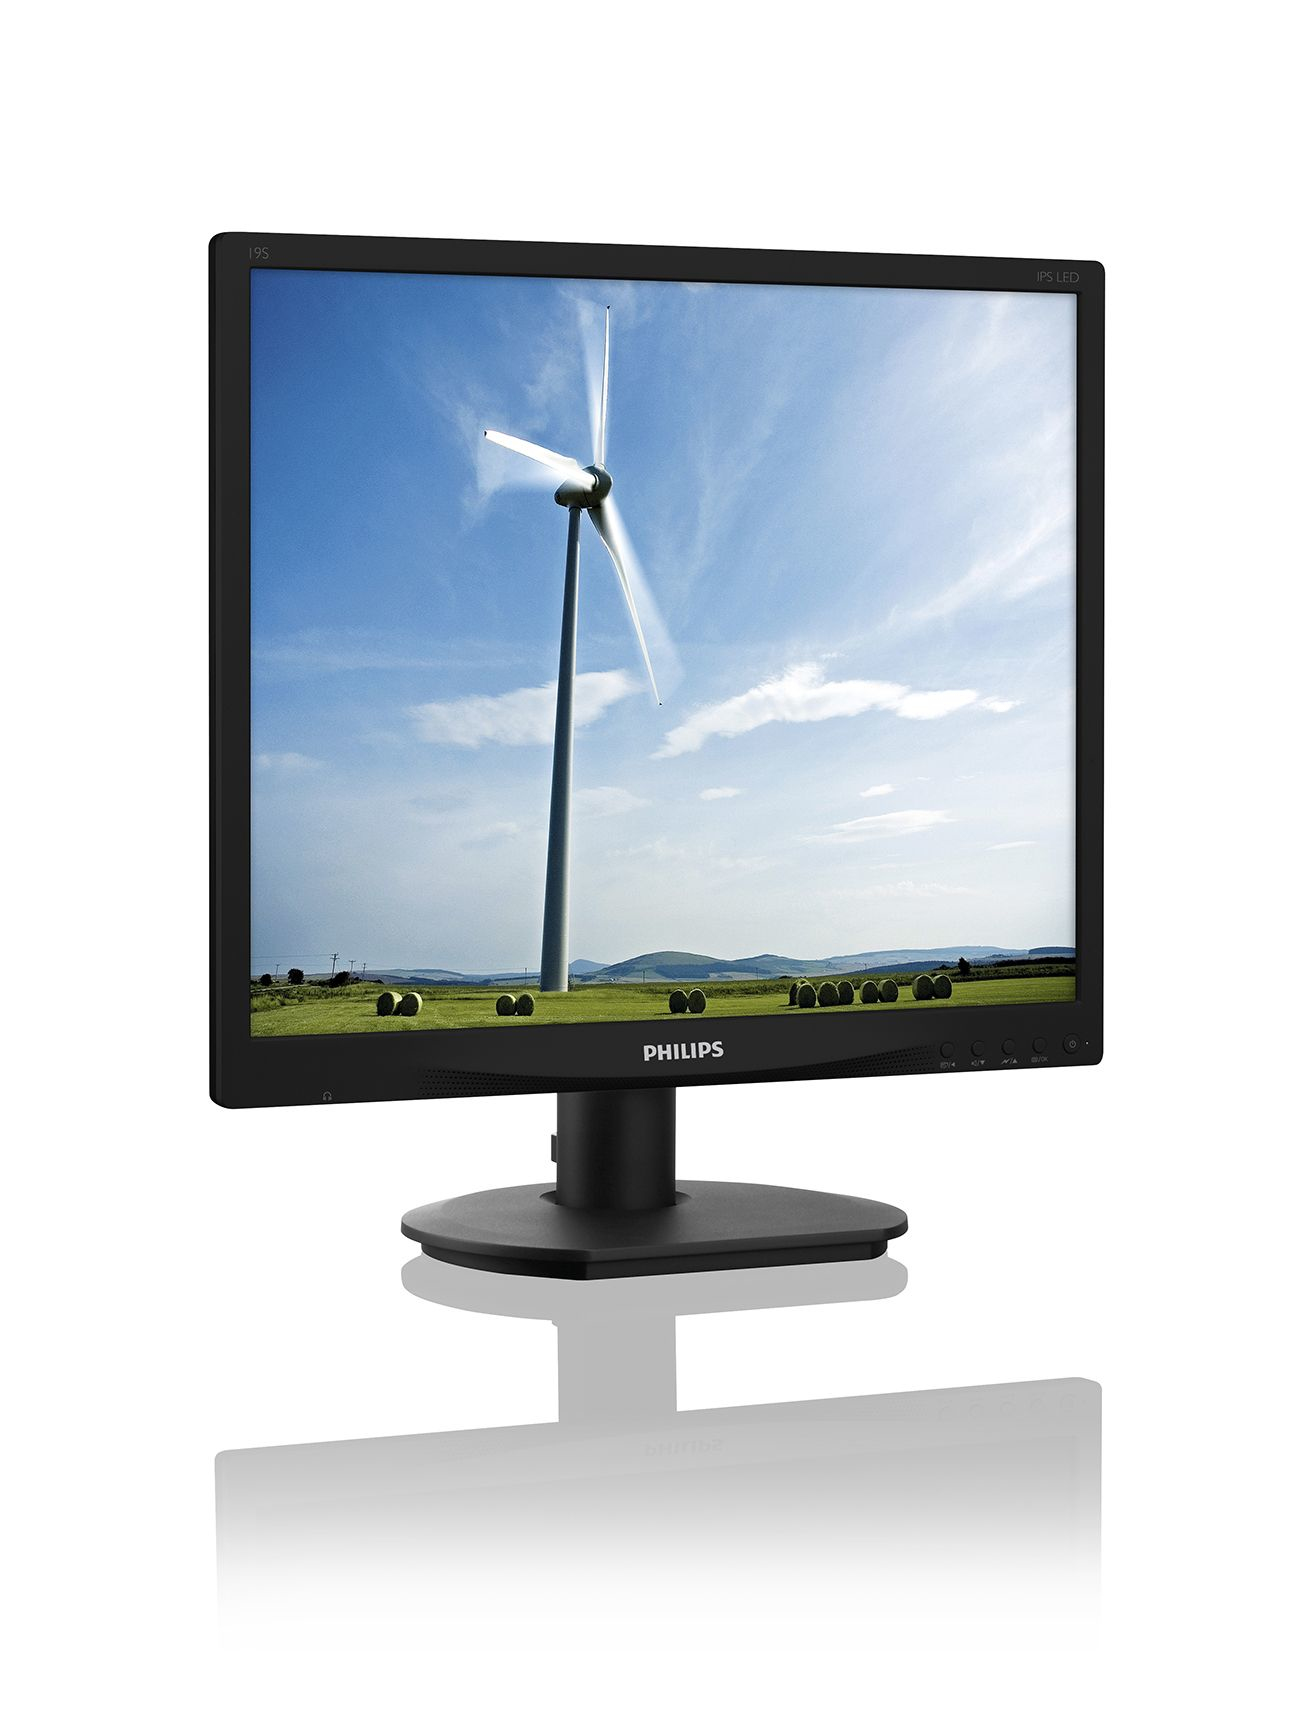 PHILIPS BRILLIANCE LED-BACKLIT LCD MONITOR 19S4QAB/00